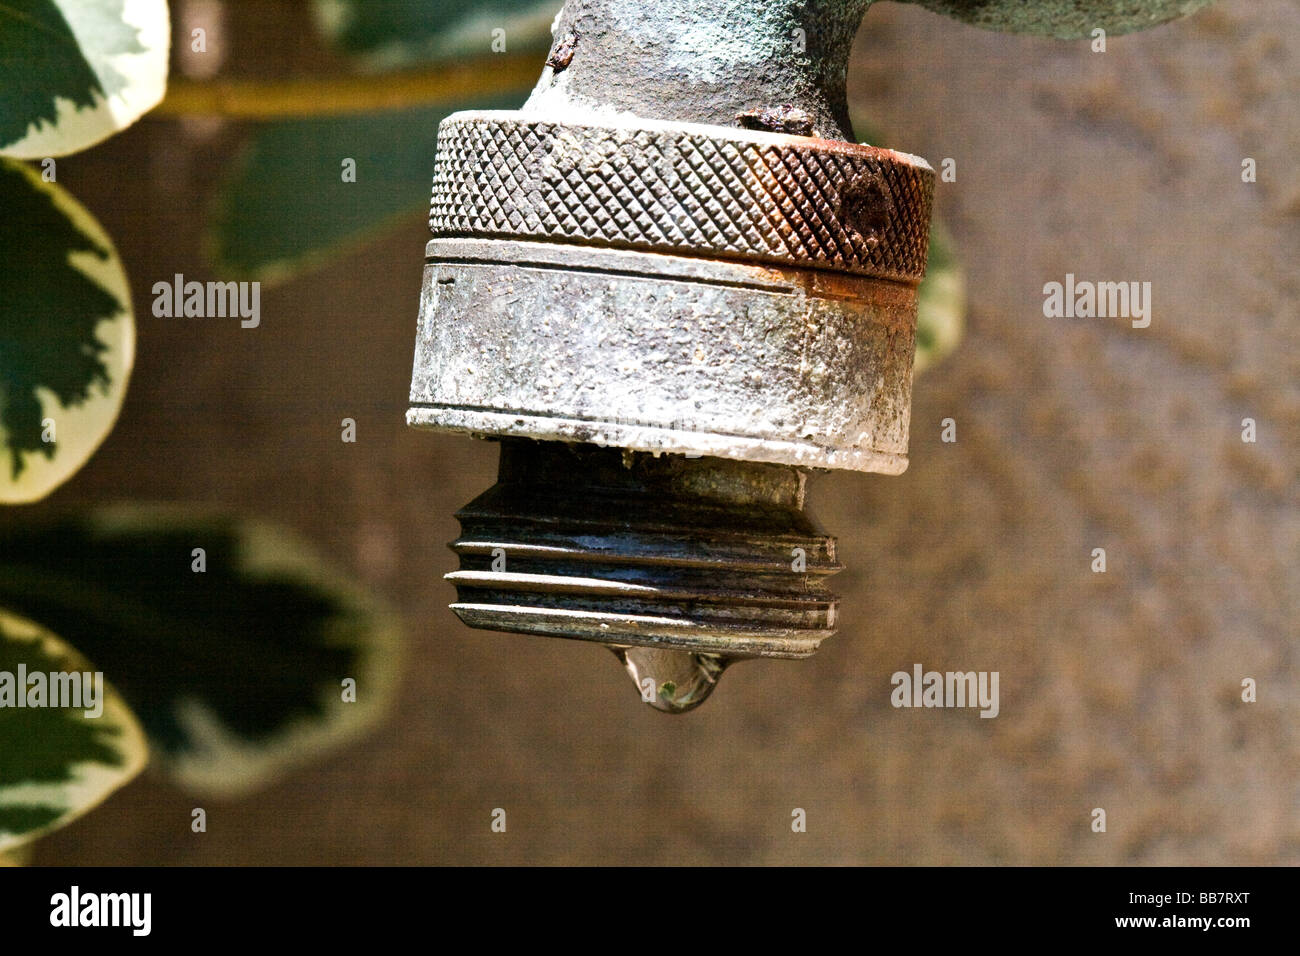 Single drop of water coming out of a metal outdoor spigot - Stock Image